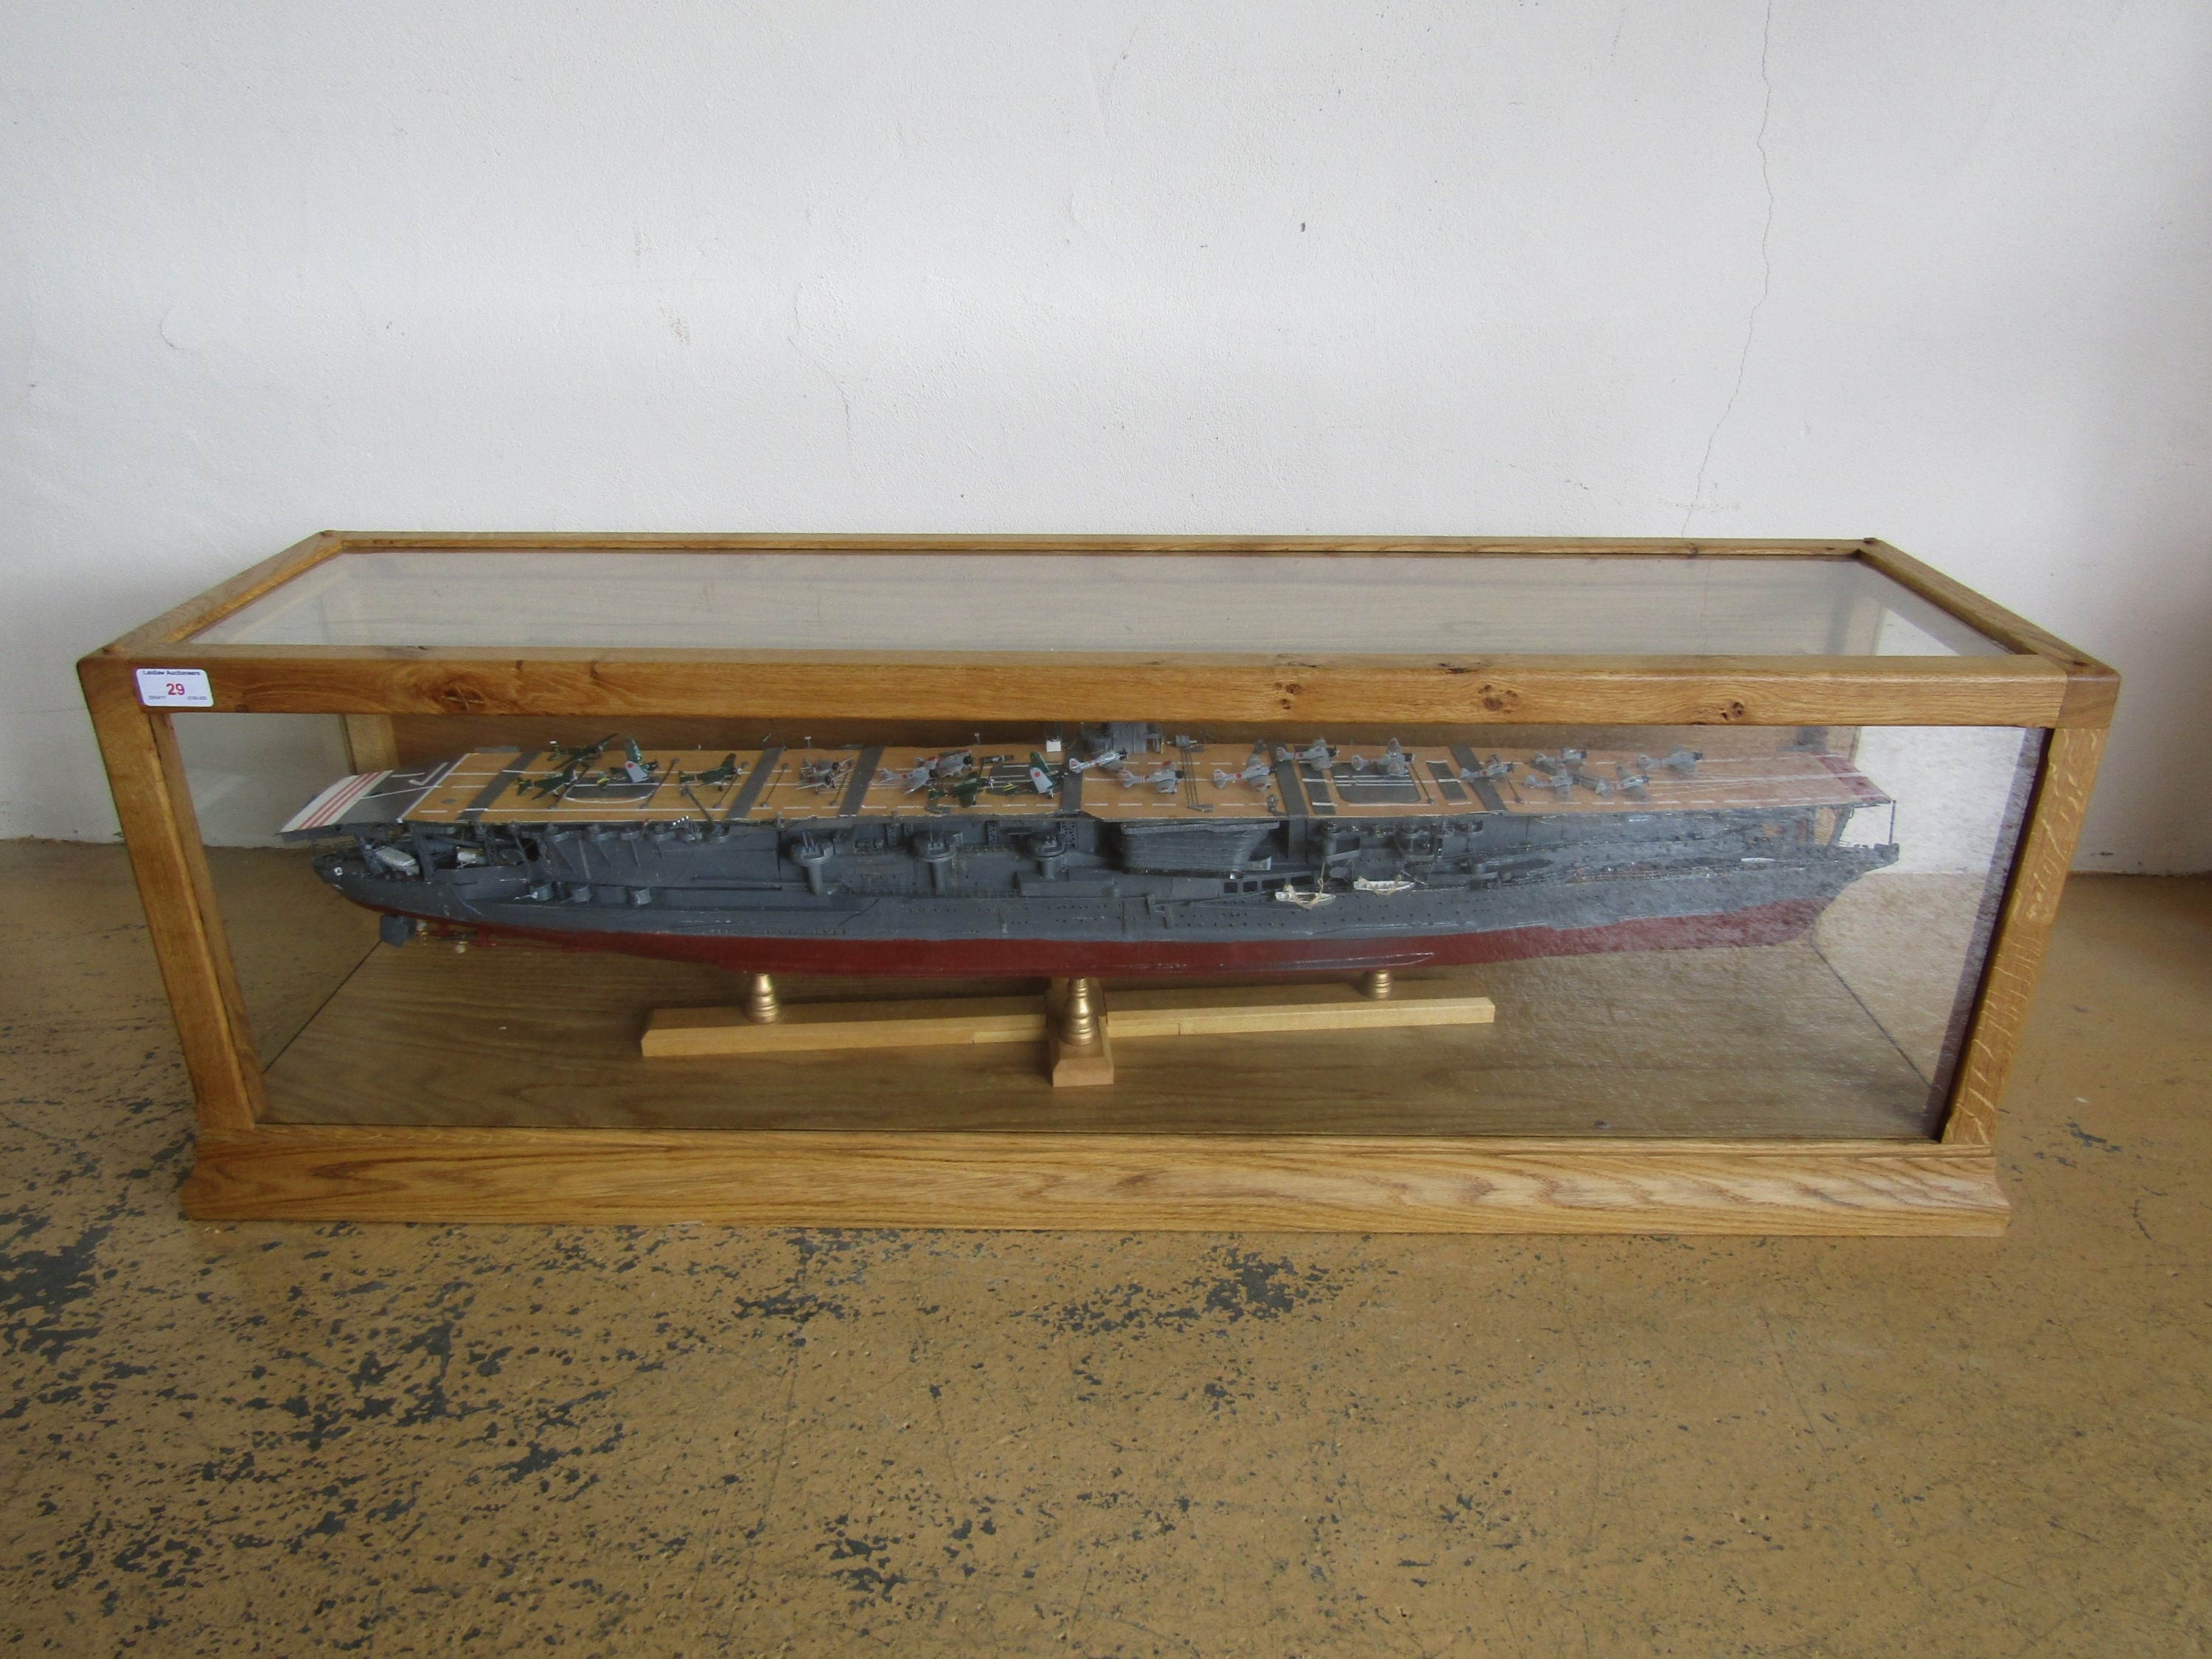 Lot 29 - A large hand-built wooden scale model of an Imperial Japanese Navy aircraft carrier, in high quality